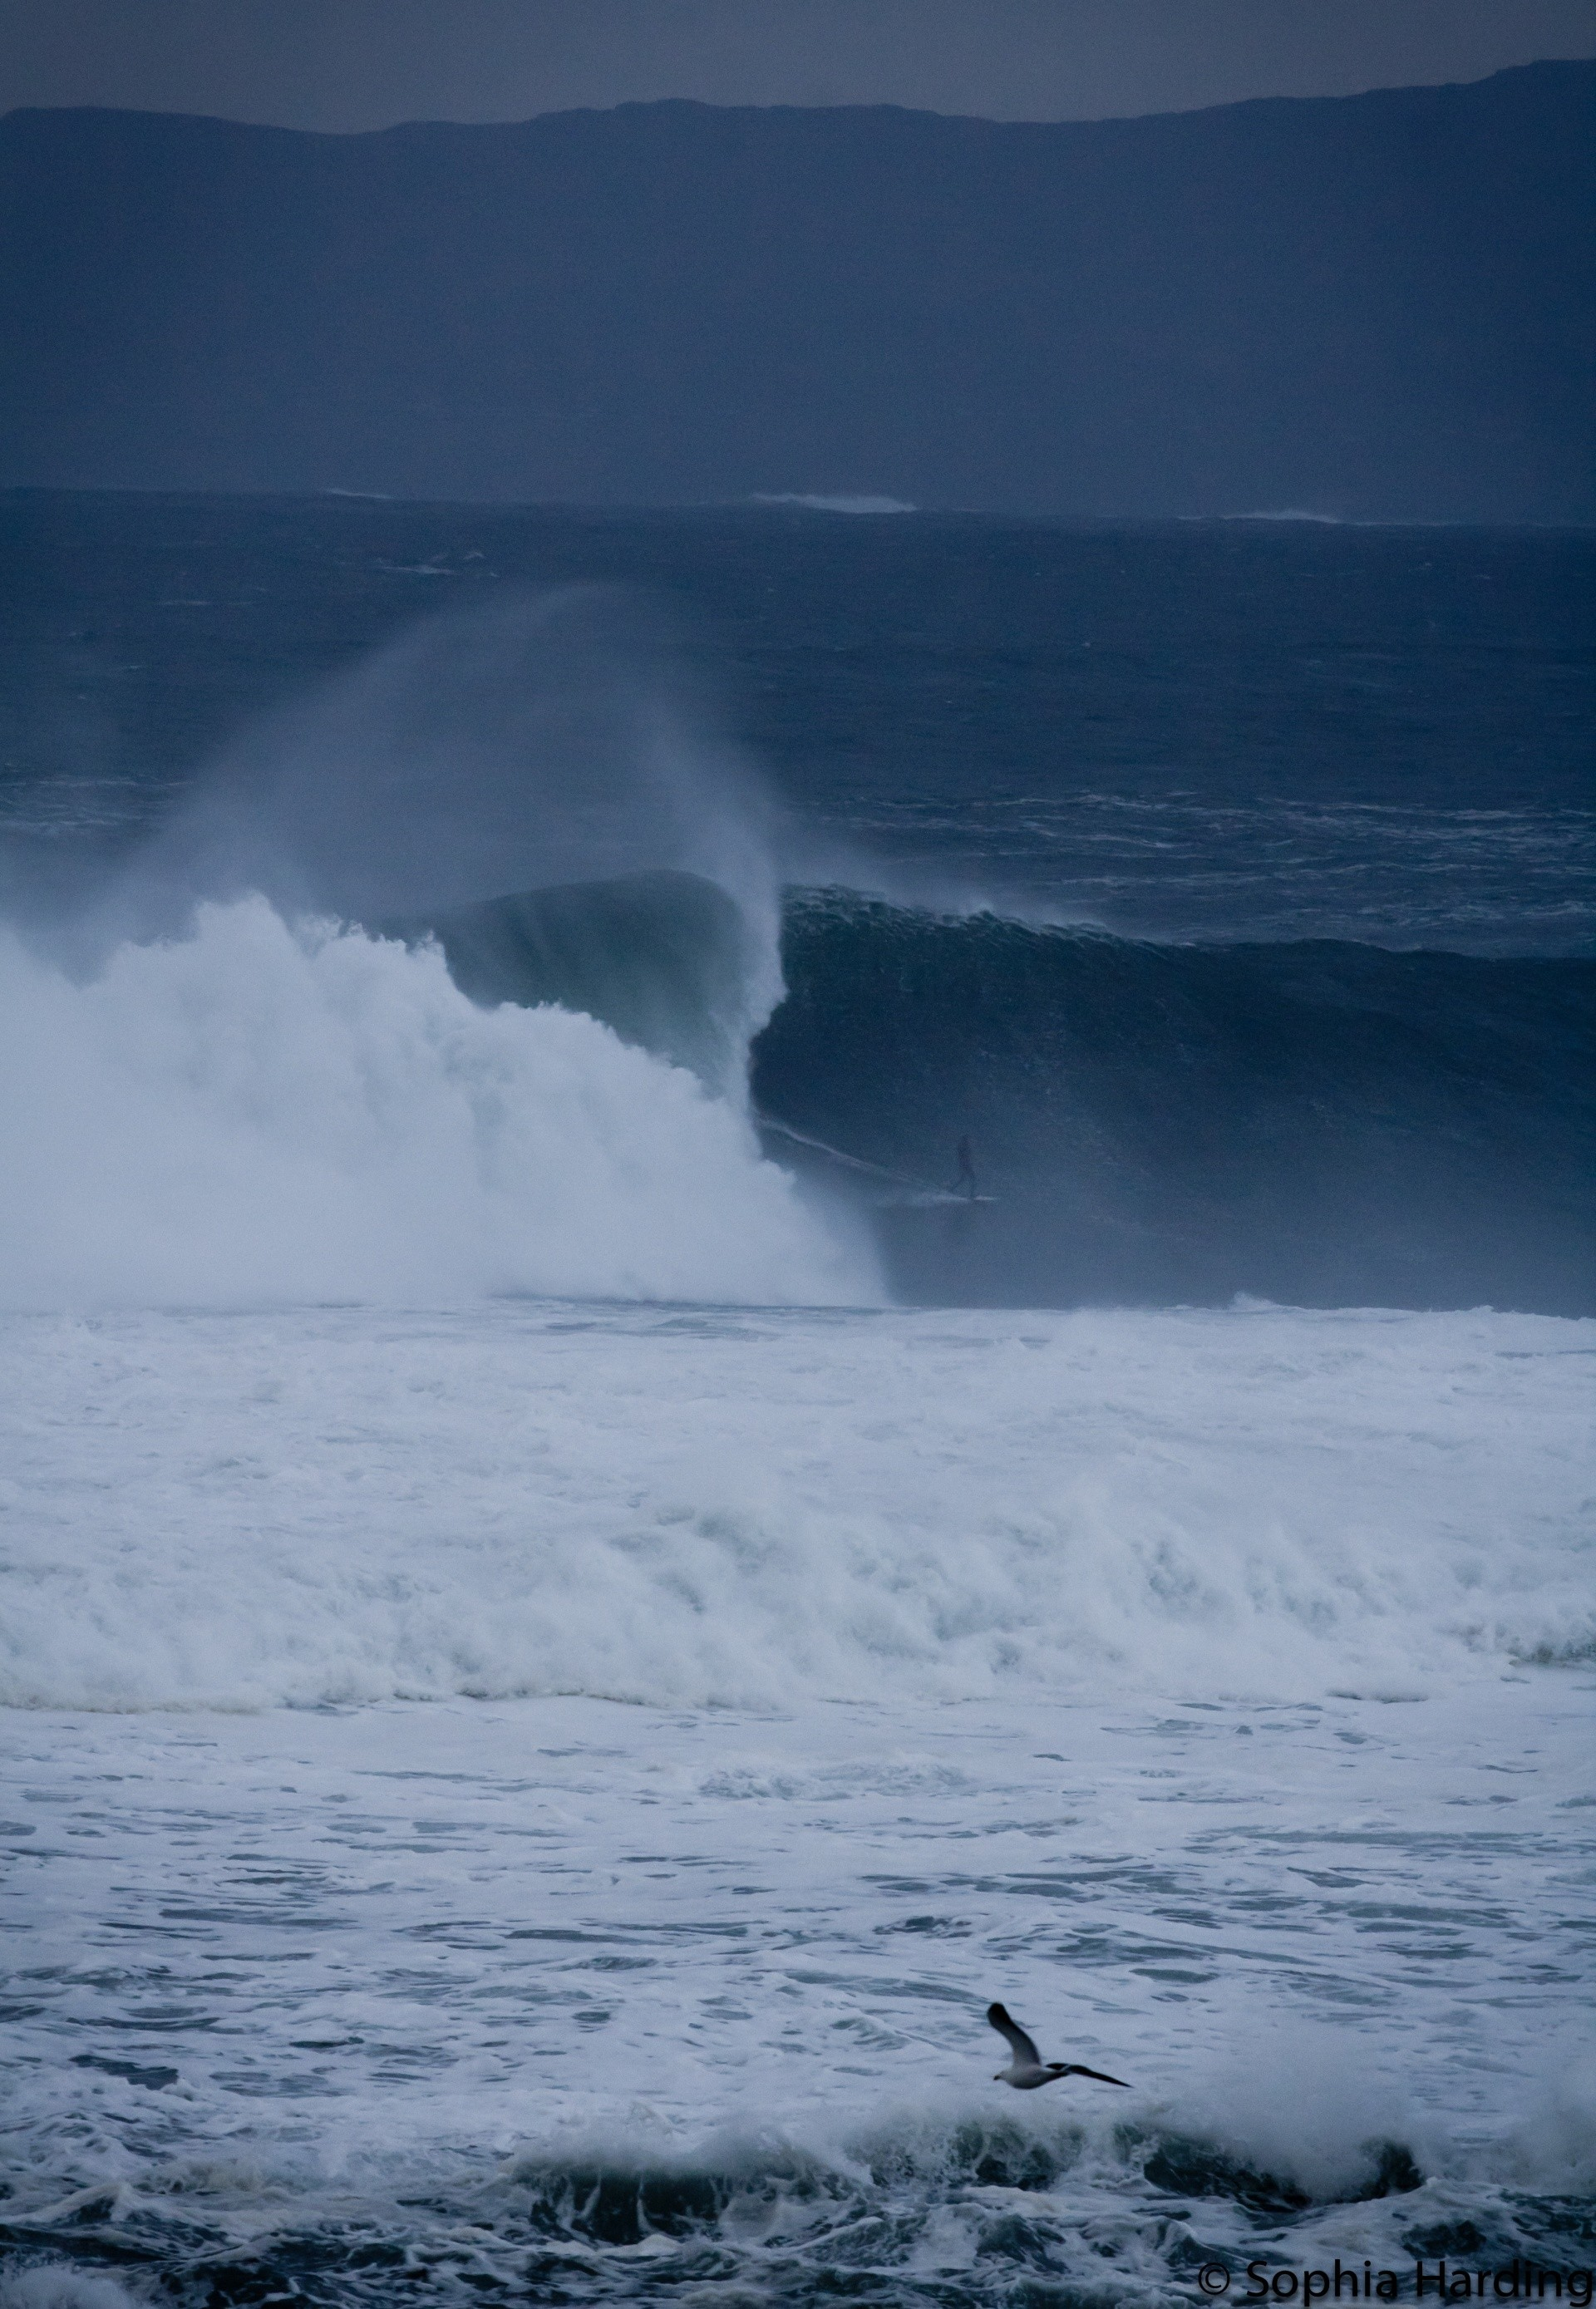 Sophia Harding's photo of Mullaghmore Head